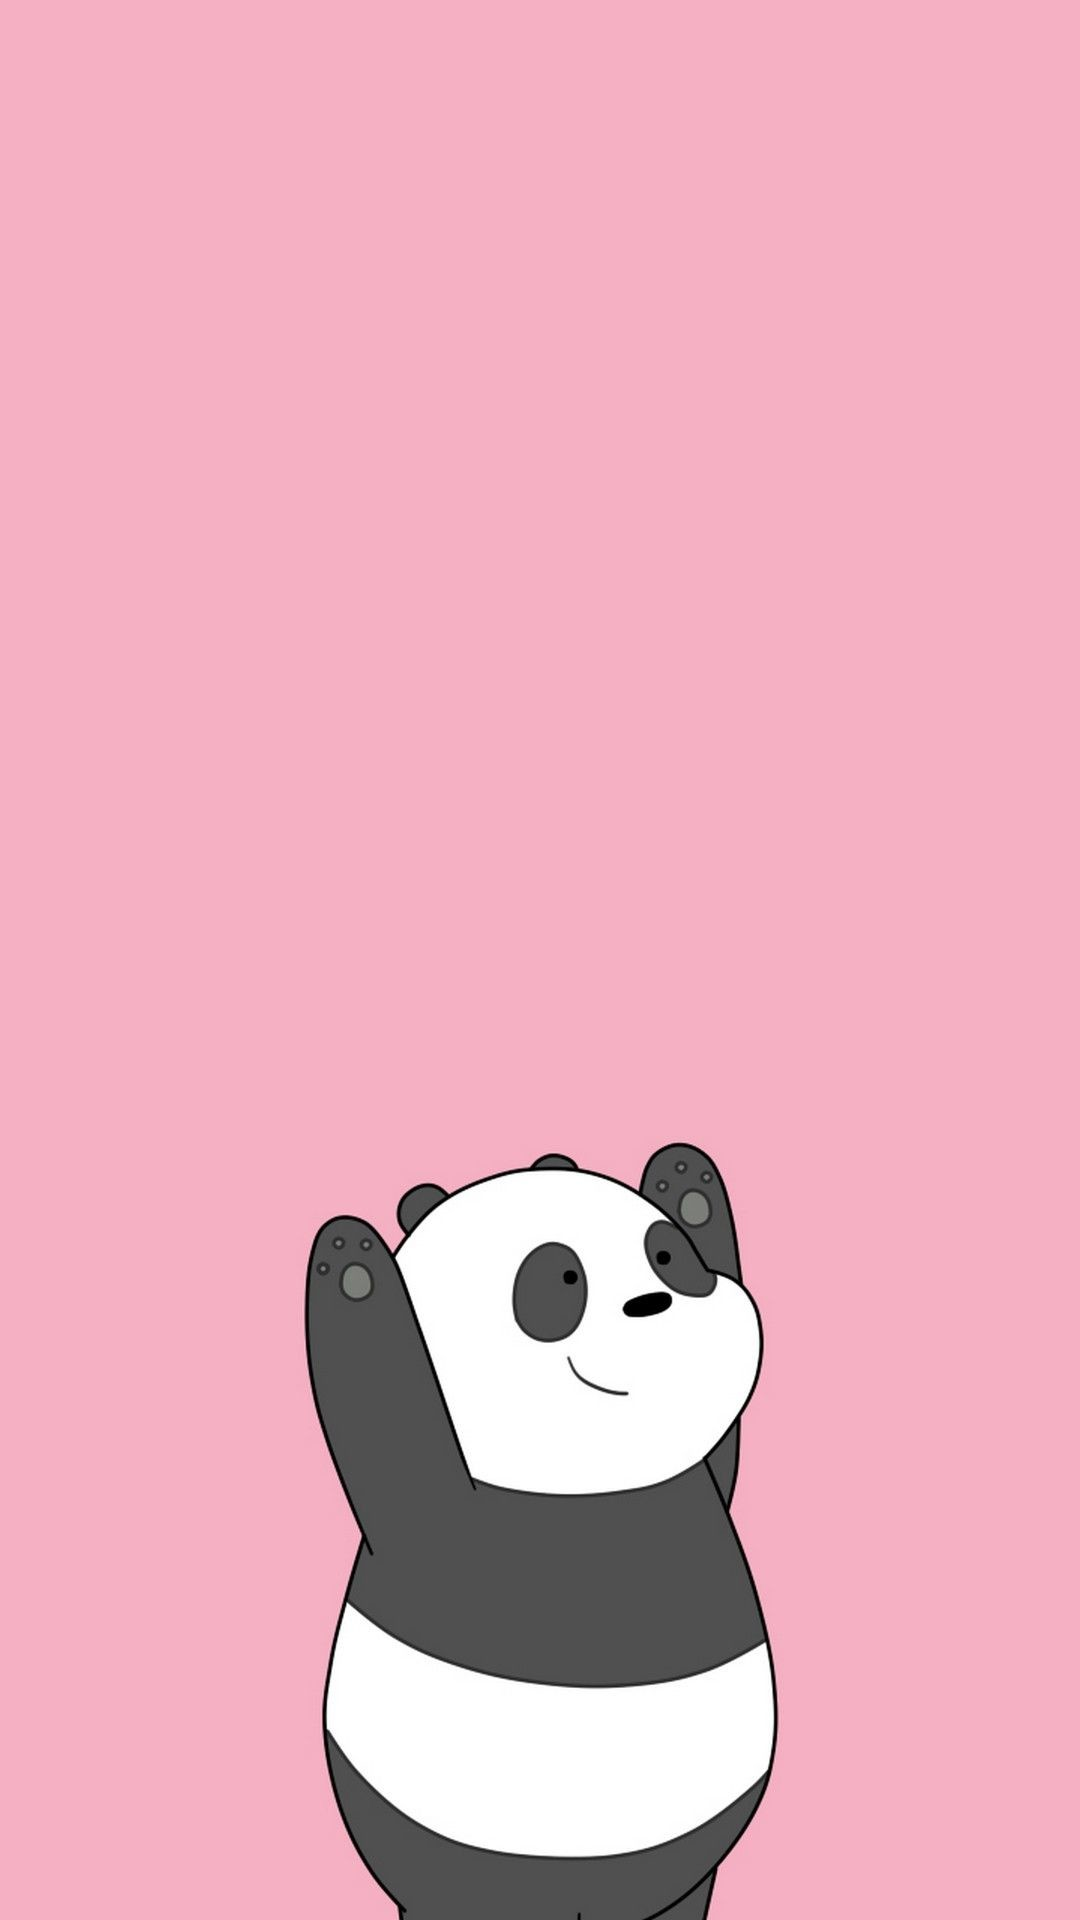 Res: 1080x1920, Cute Panda Wallpaper For Android | Best HD Wallpapers